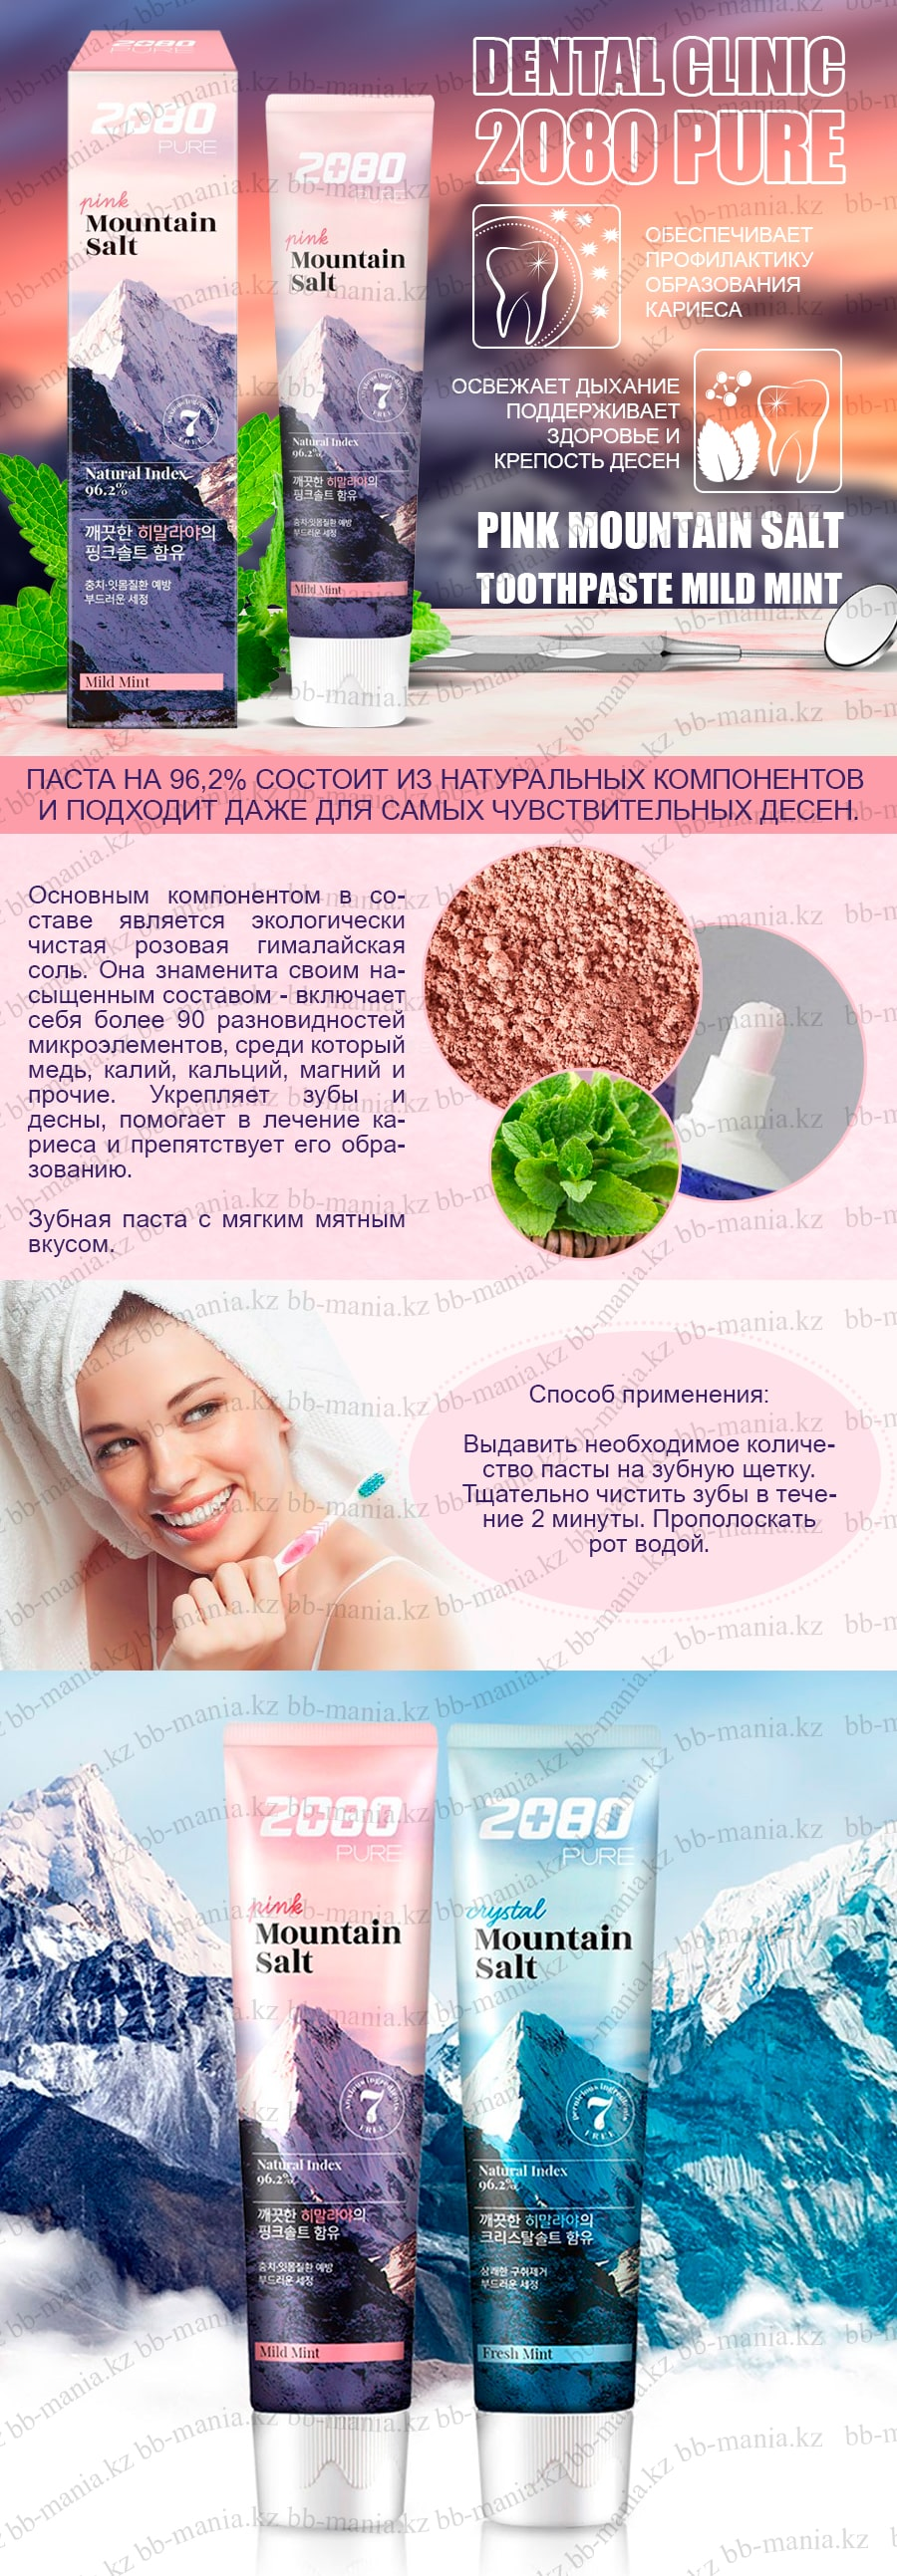 Dental-Clinic-2080-Pure-Pink-Mountain-Salt-Toothpaste-Mild-Mint-[Kerasys]-min